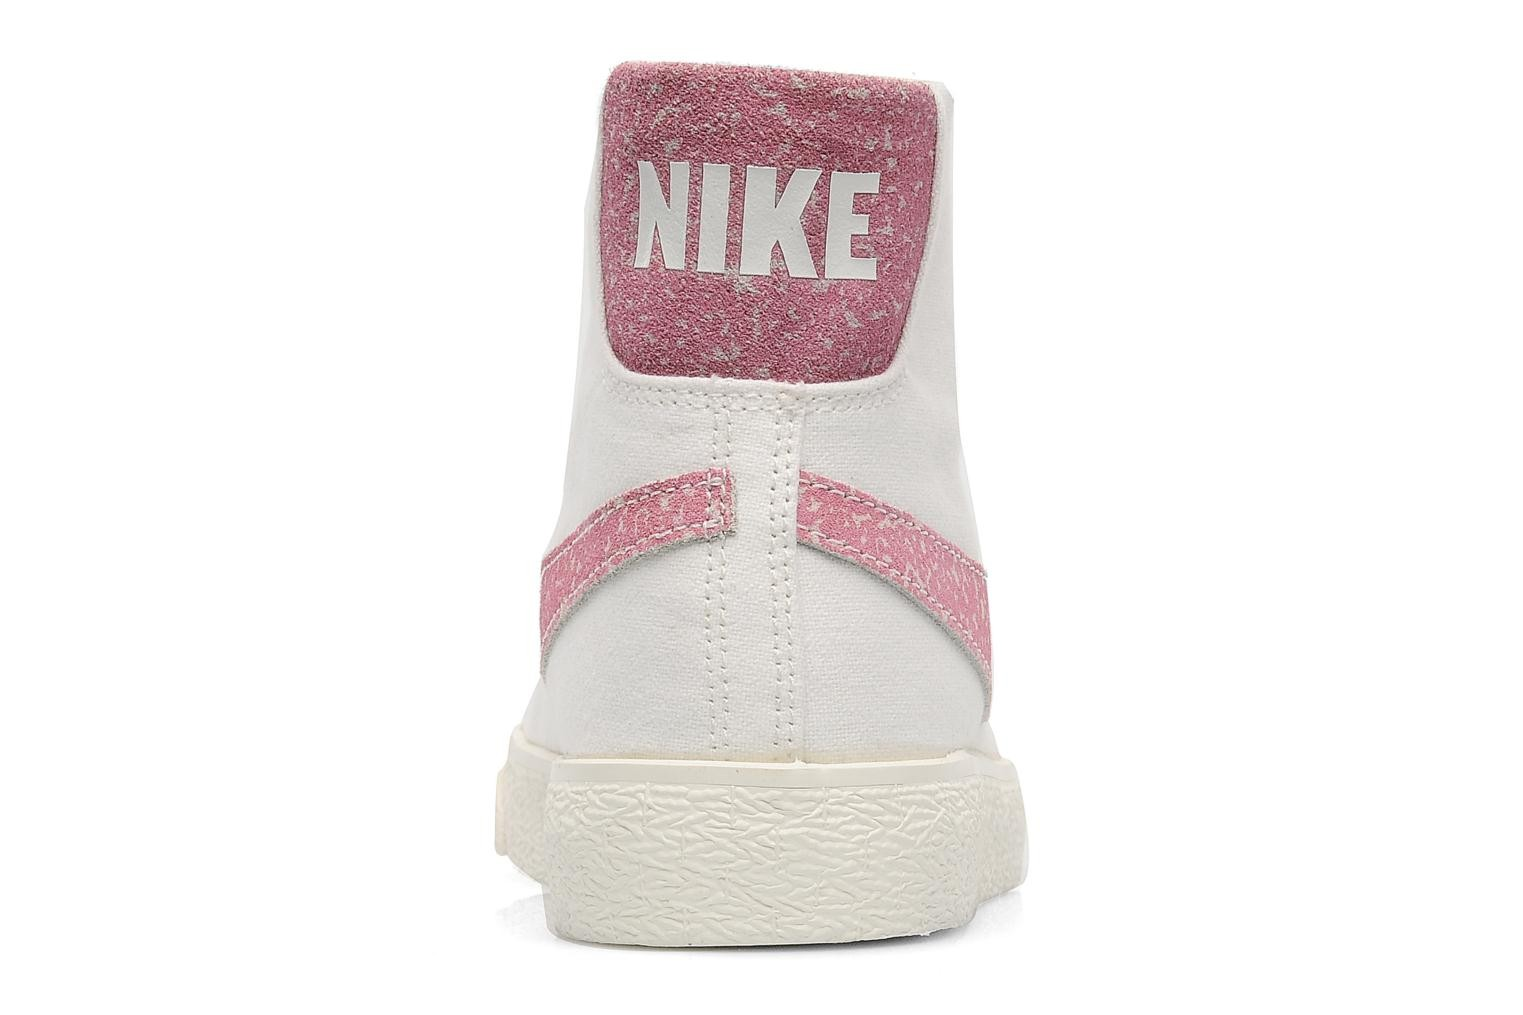 Nike WMNS Blazer Mid Decon Cvs Sail Pink Force Womens High Top Sneakers